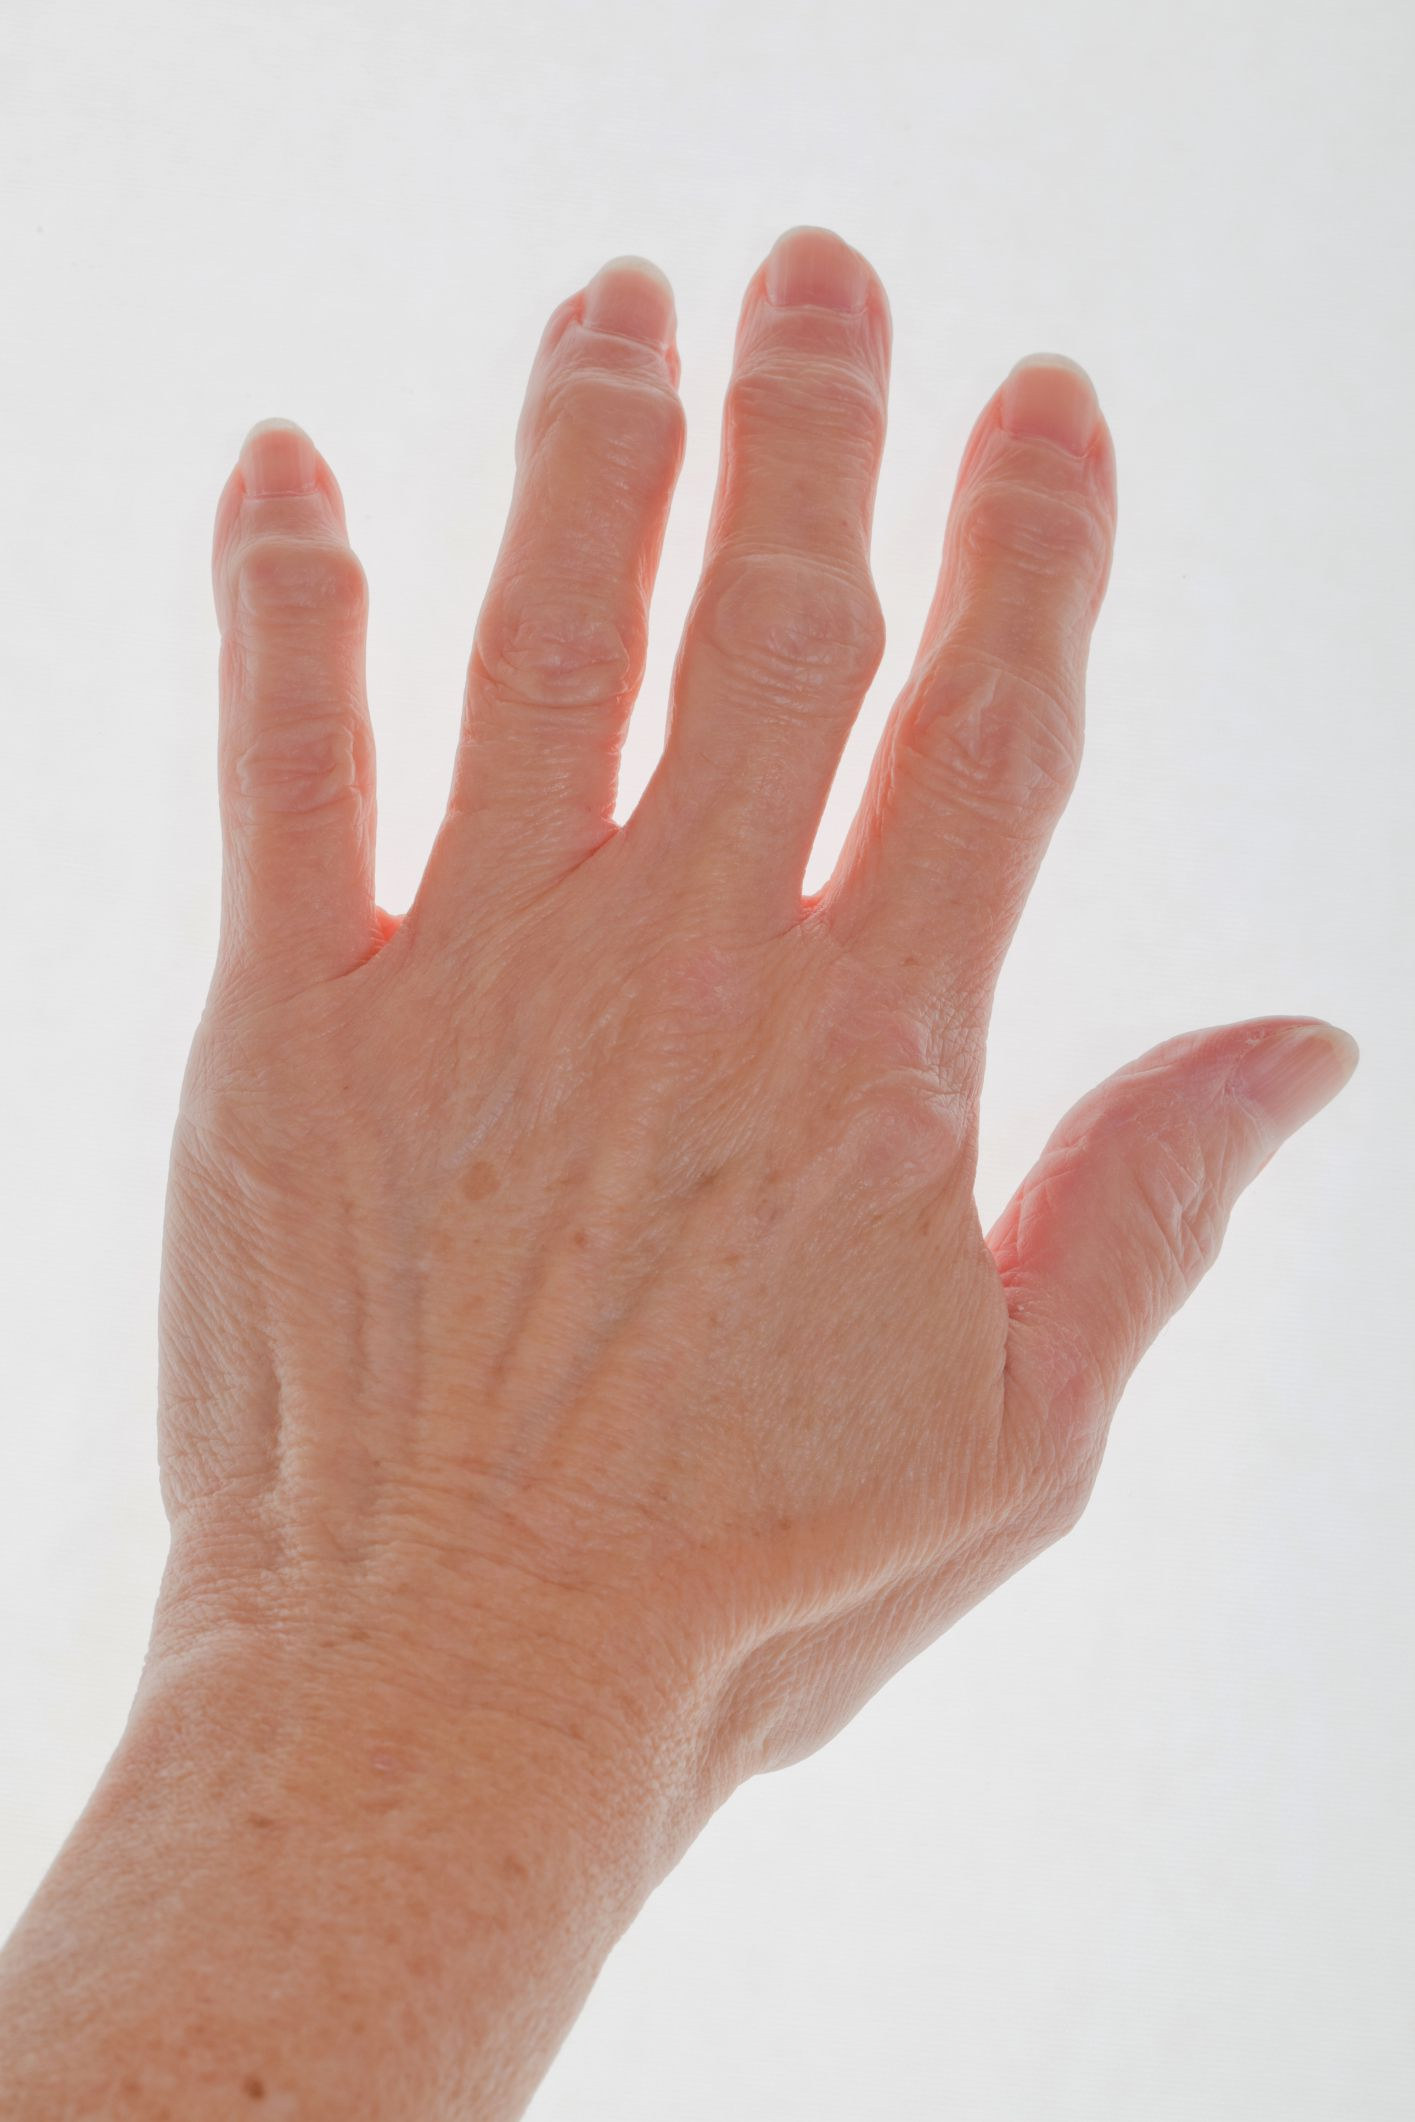 Finger Arthritis: Signs, Symptoms, And Treatment